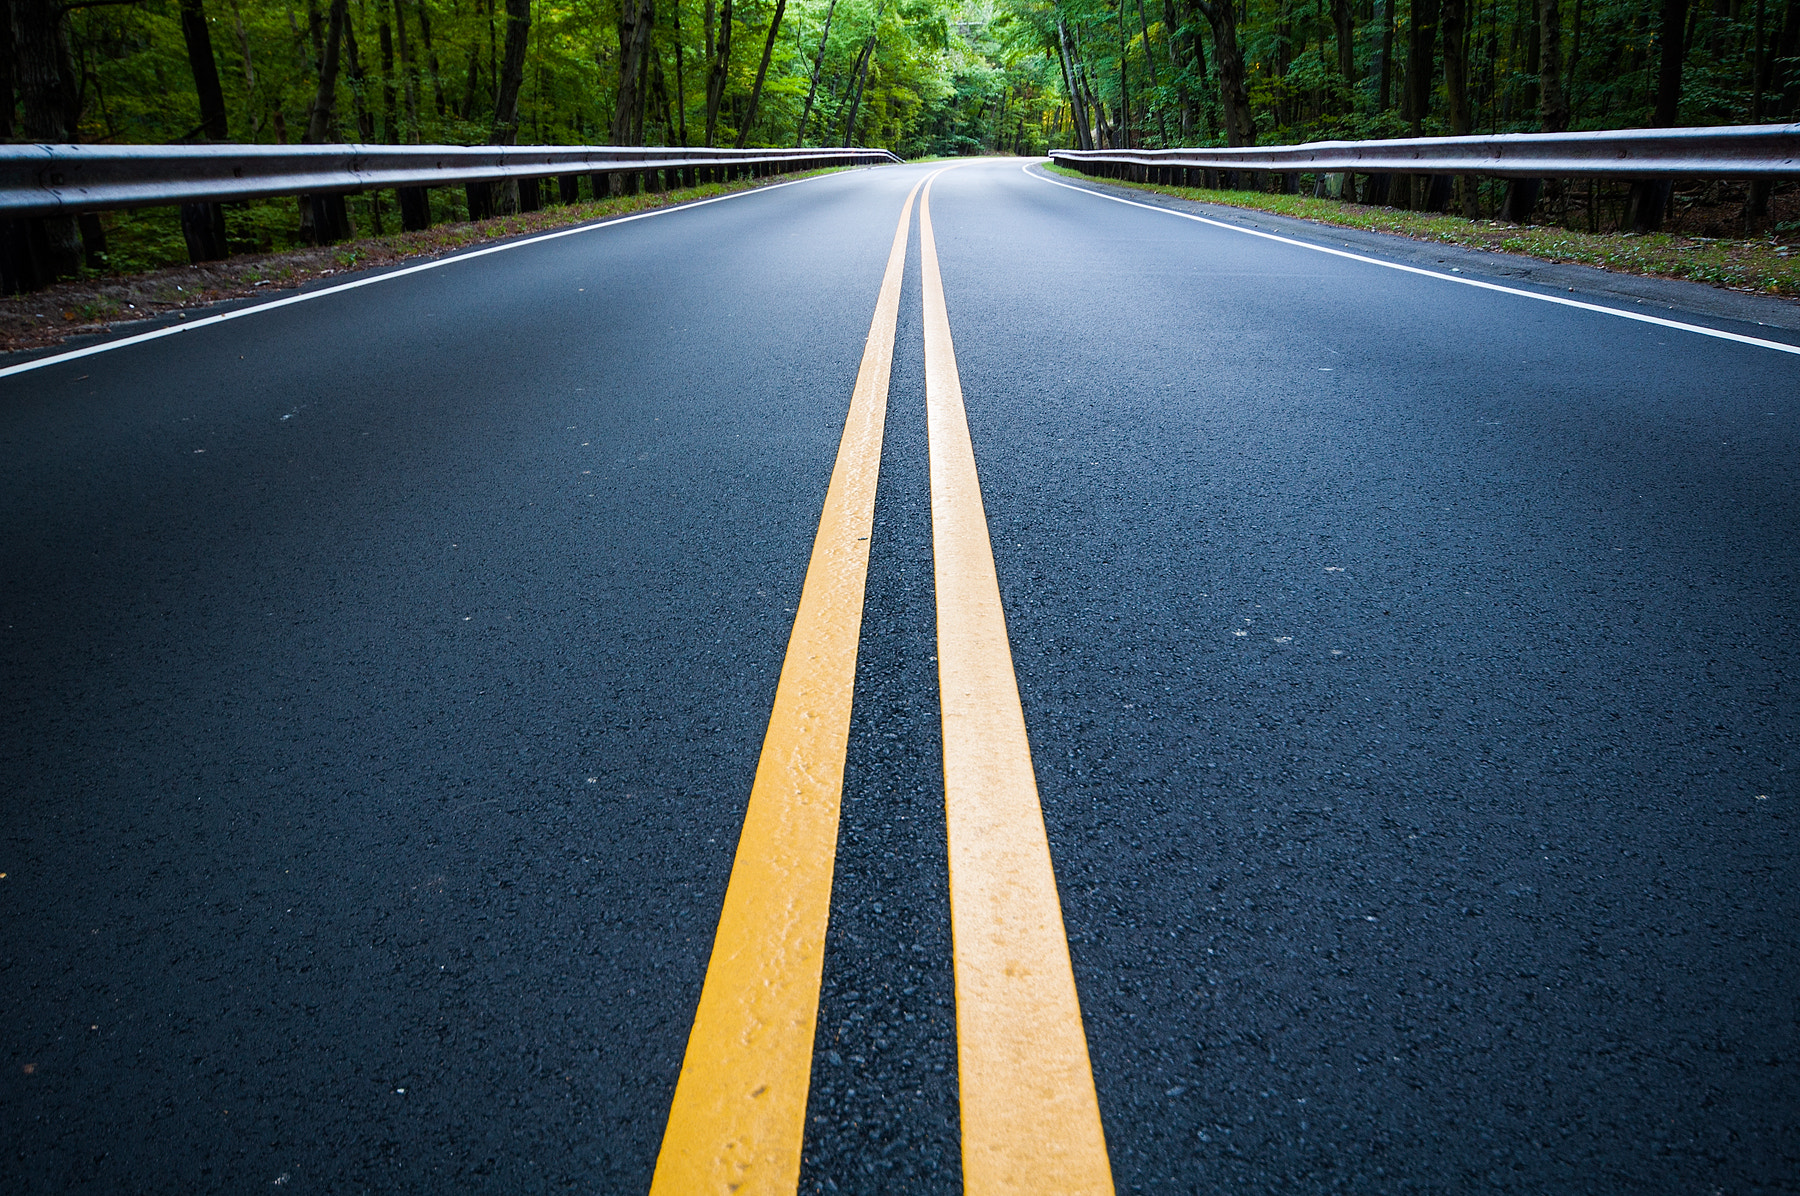 Photograph Curve ahead by Lee Costa on 500px